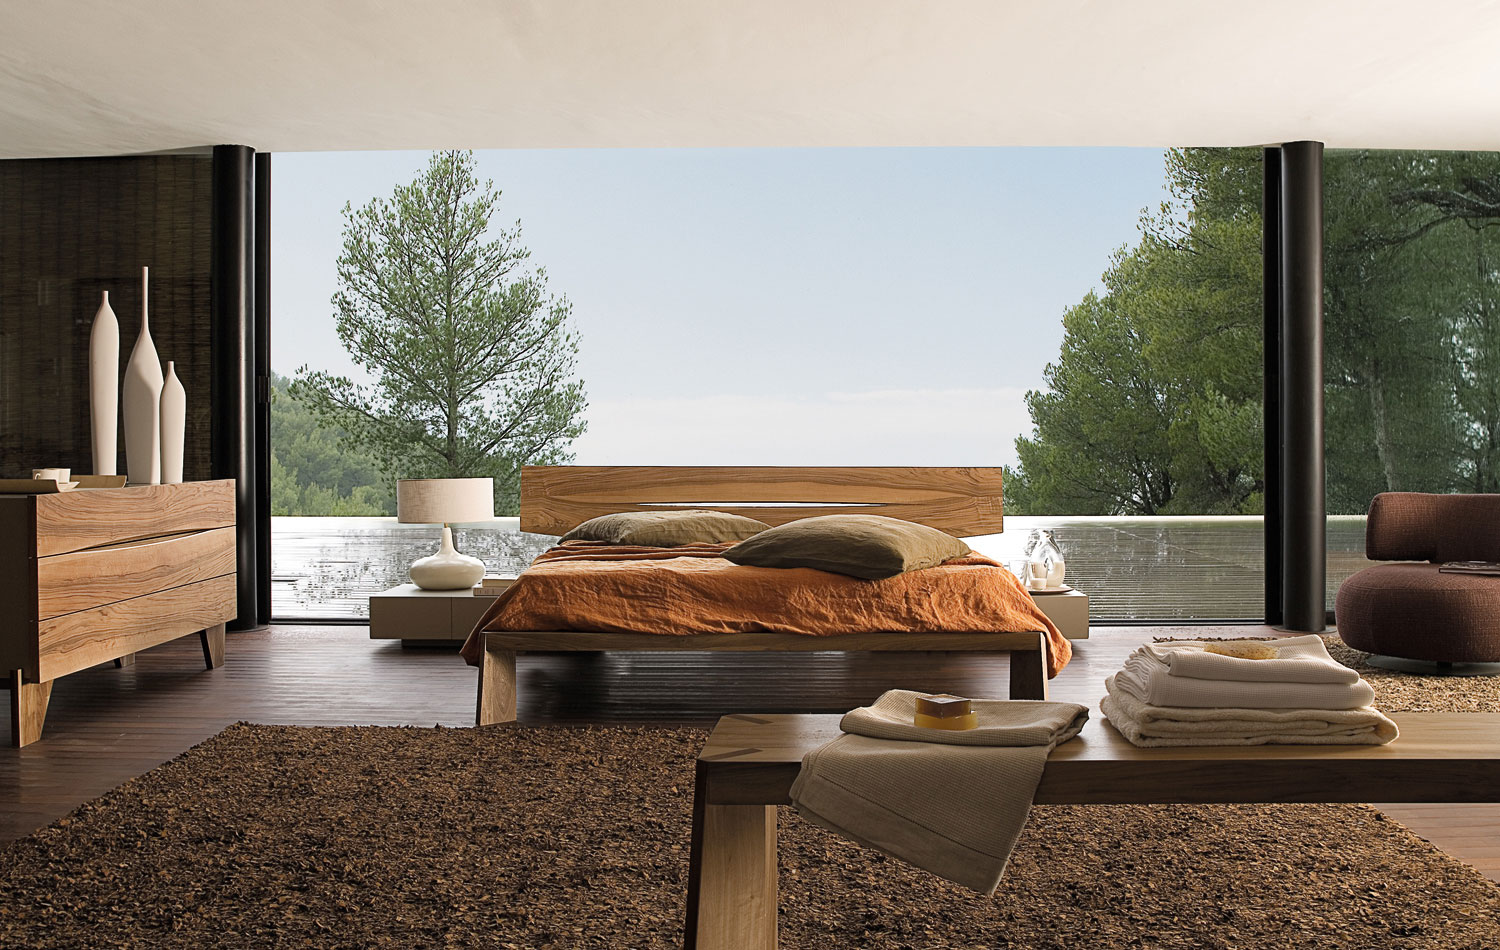 Sofas Modernos Bedroom Inspiration: 20 Modern Beds By Roche Bobois